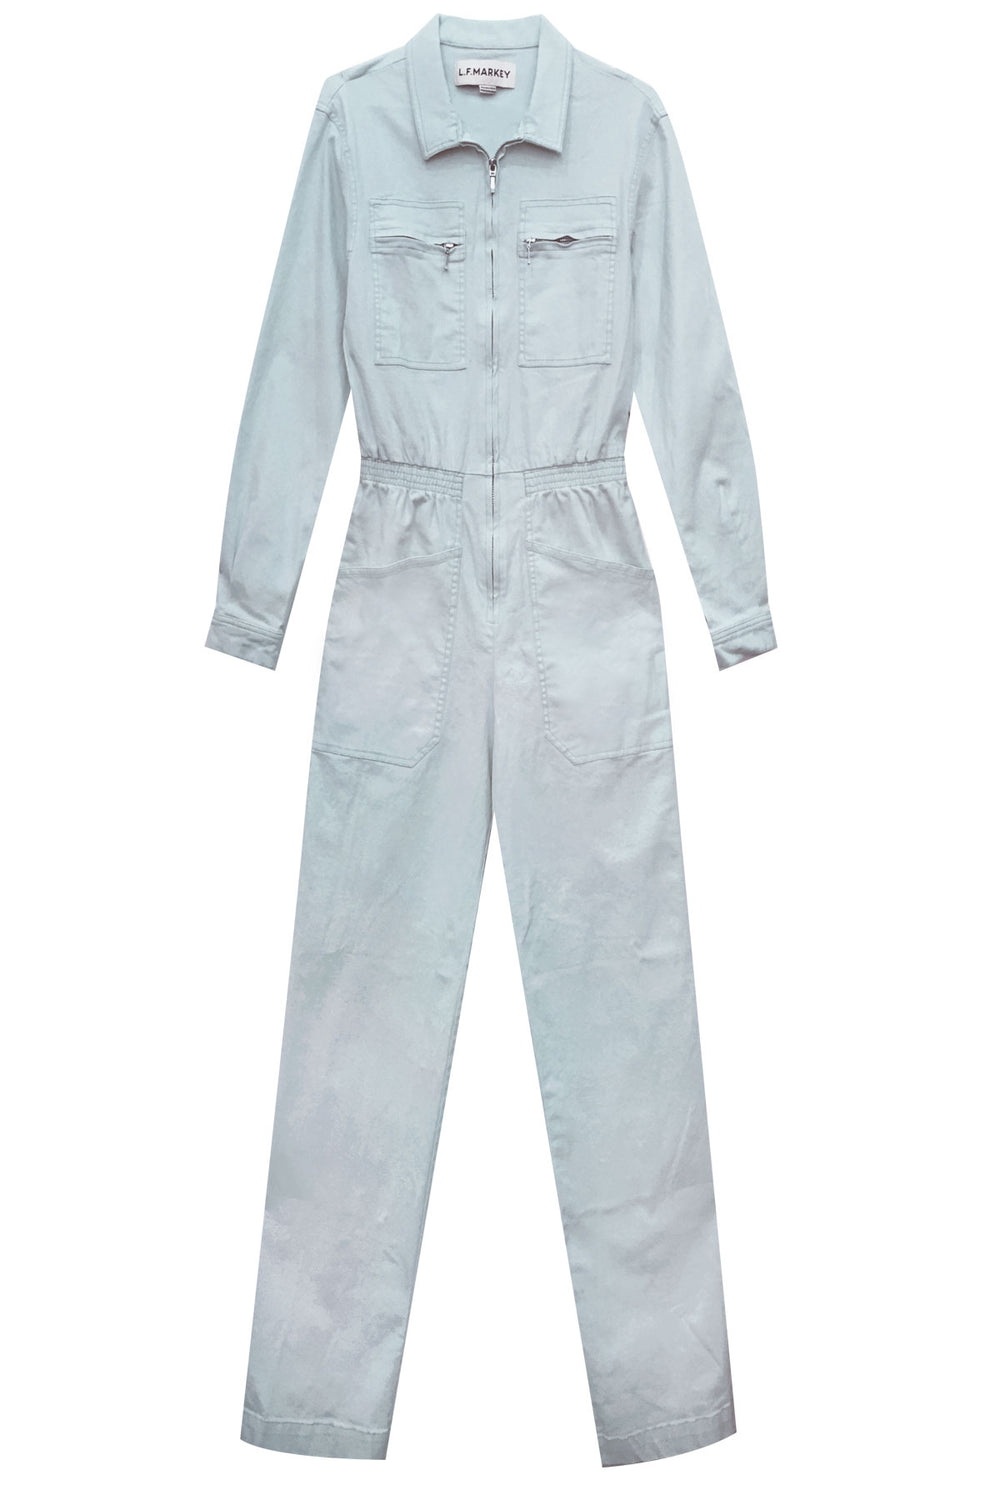 Danny Longsleeve Boilersuit Sky